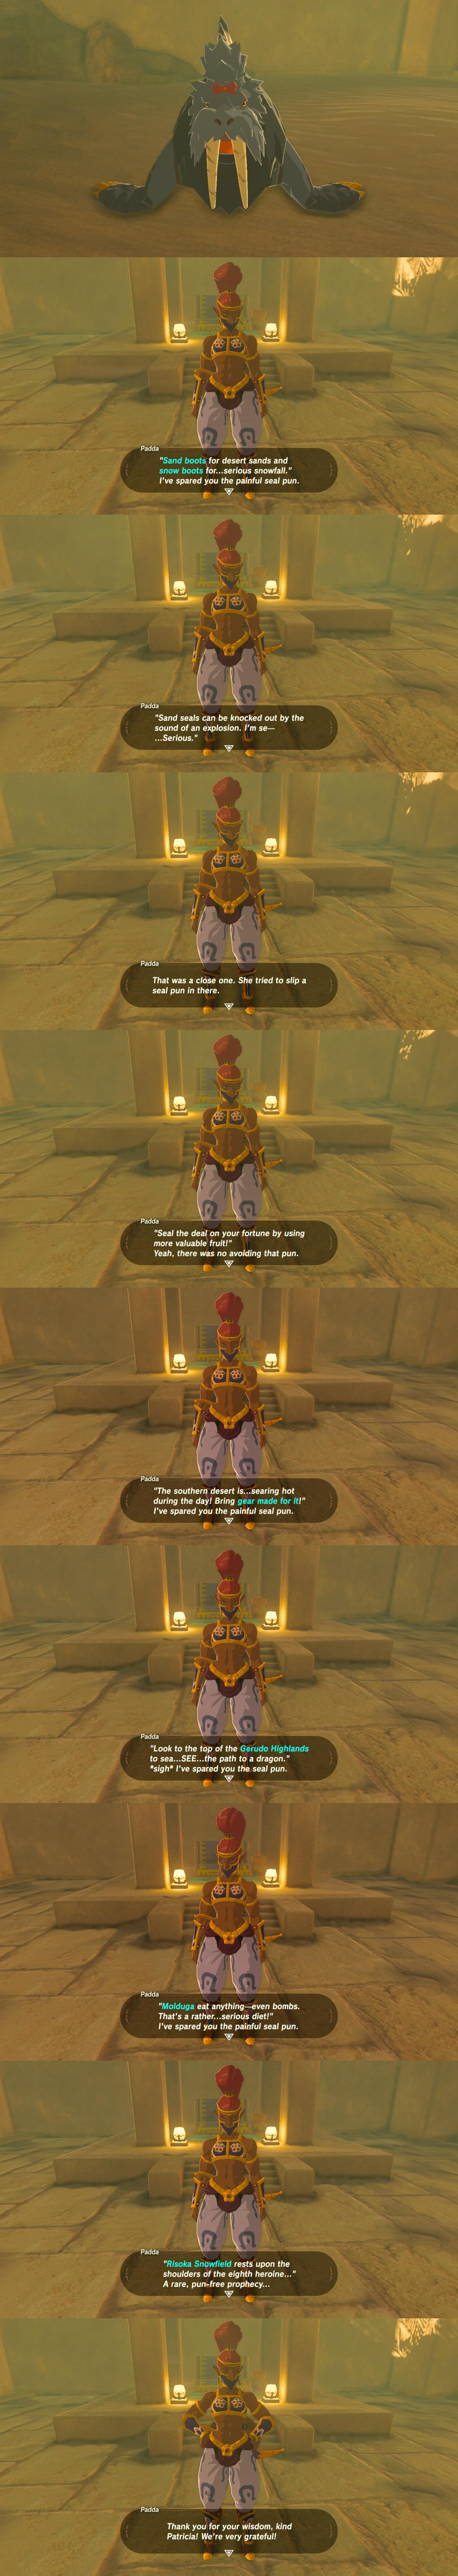 The Legend of Zelda: Breath of the Wild / Funny - TV Tropes